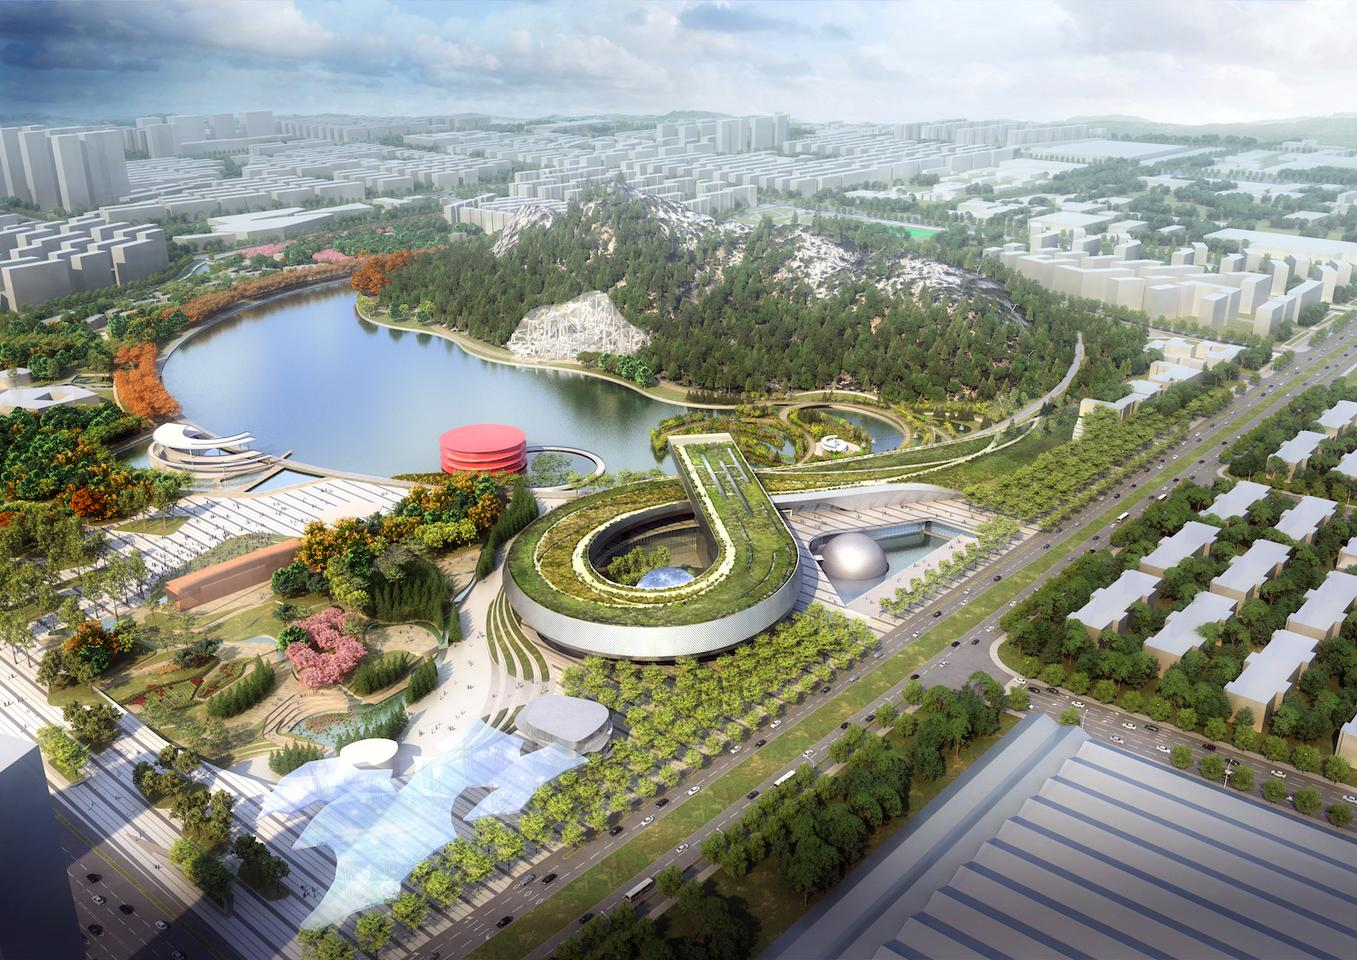 The Suzhou Science & Technology Museum will have a total floorspace of 600,000 sq ft (55,741 sq m)